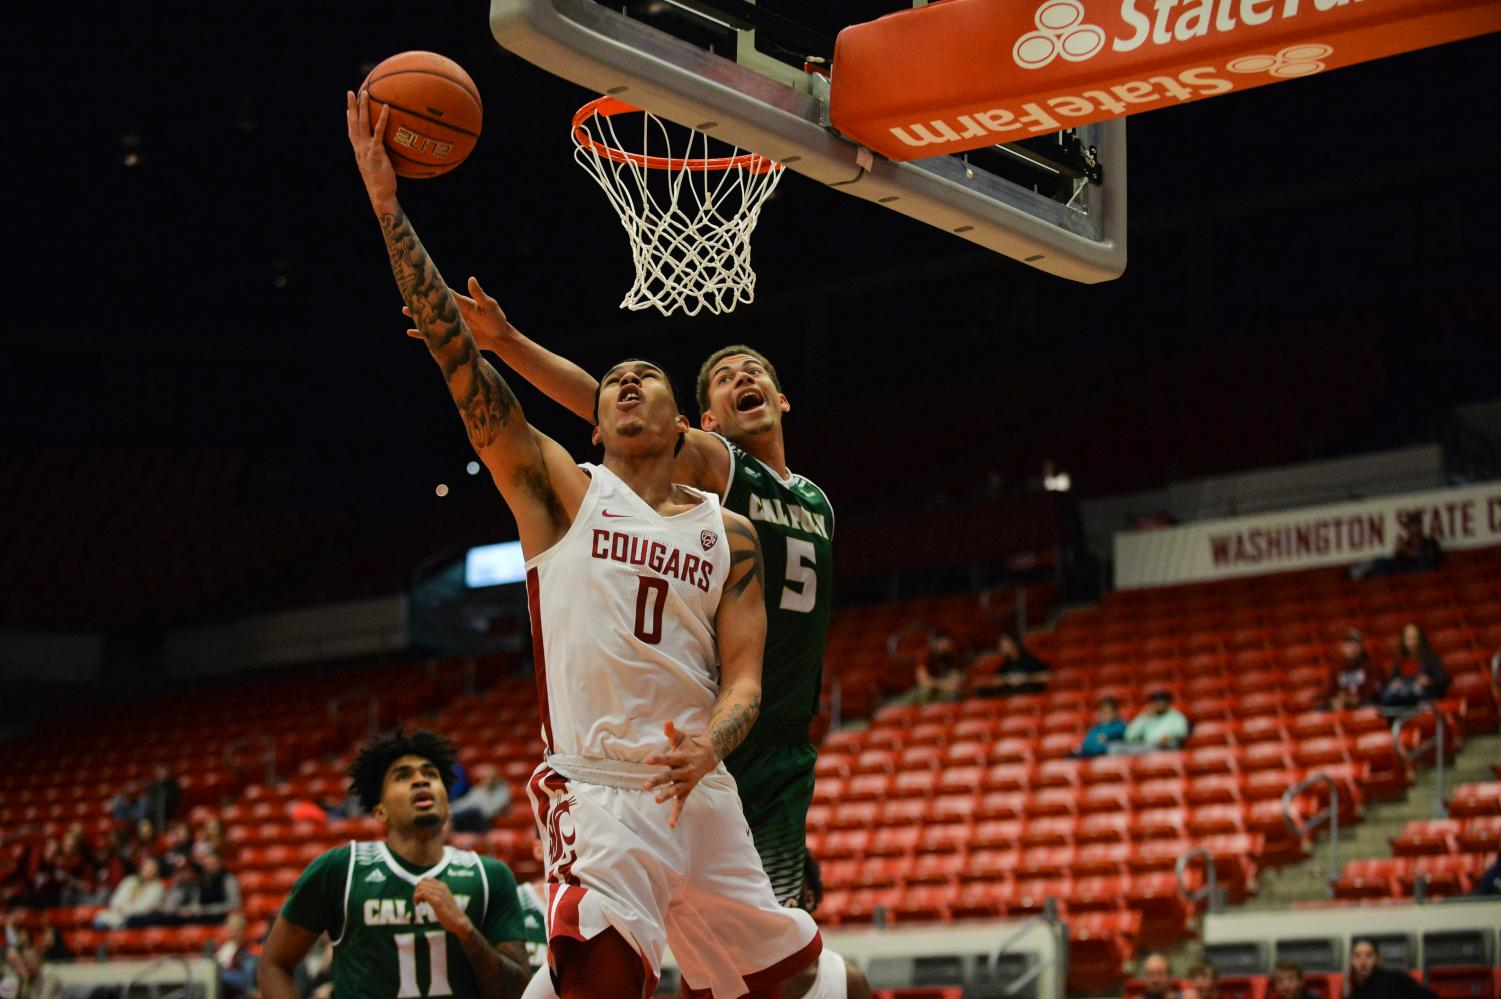 Junior power forward Isaiah Wade shoots a layup past Cal Poly sophomore wing Mark Crowe during the Cougars' 84-70 win over the Mustangs on Nov. 19 in Beasley Coliseum.